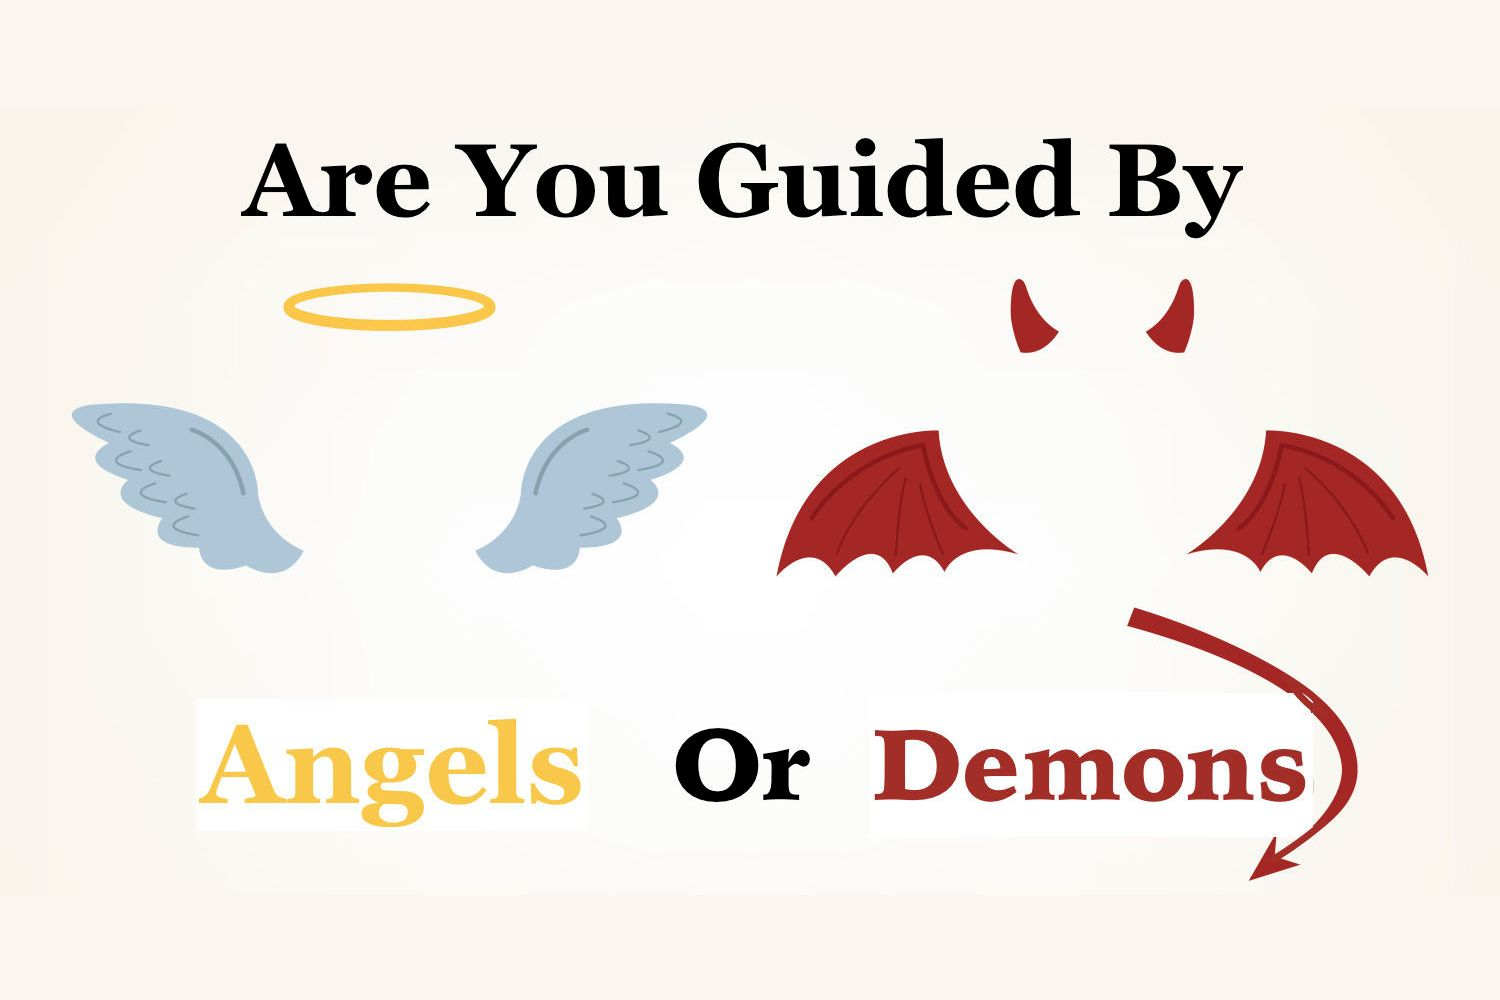 Are You Guided By Angels Or Devils?